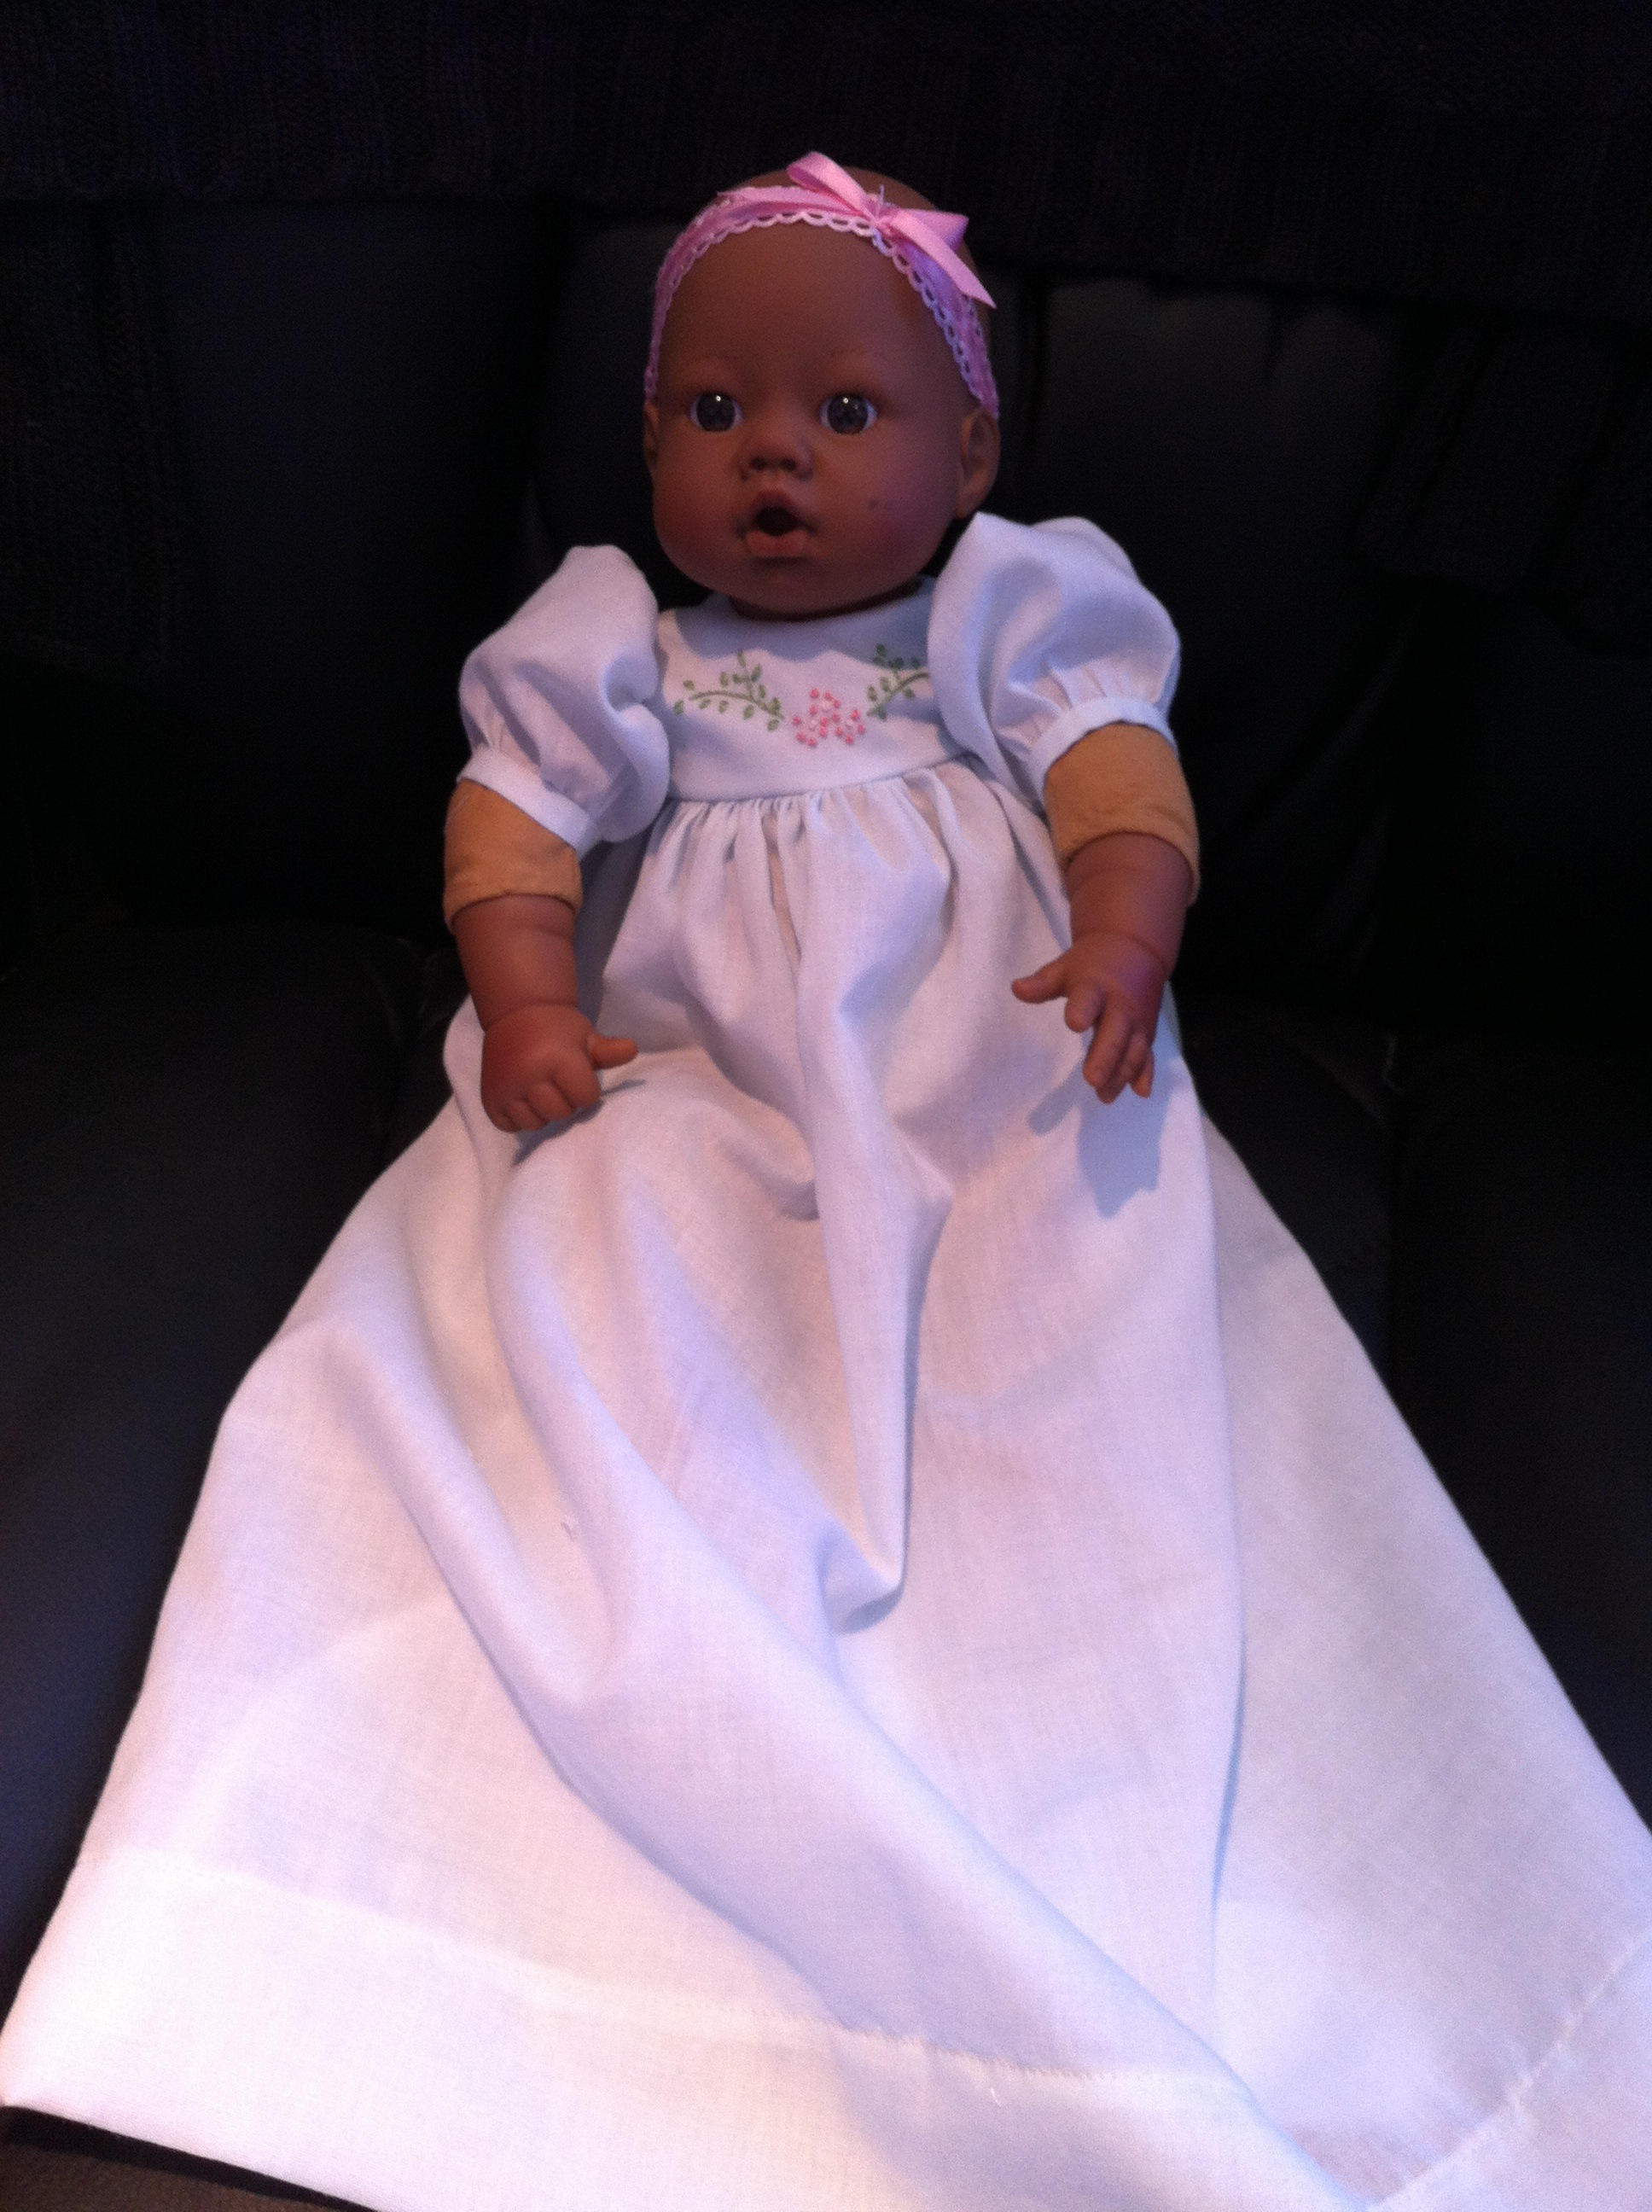 Preemie Gowns. Retail $ SALE $ Vitamin's Baby is known for their quality construction and provide superior comfort and durability. These preemie gowns are made from super soft % cotton fabrics, deliver warmth, breath-ability, and are perfect for delicate preemie skin. Many come with matching accessories.